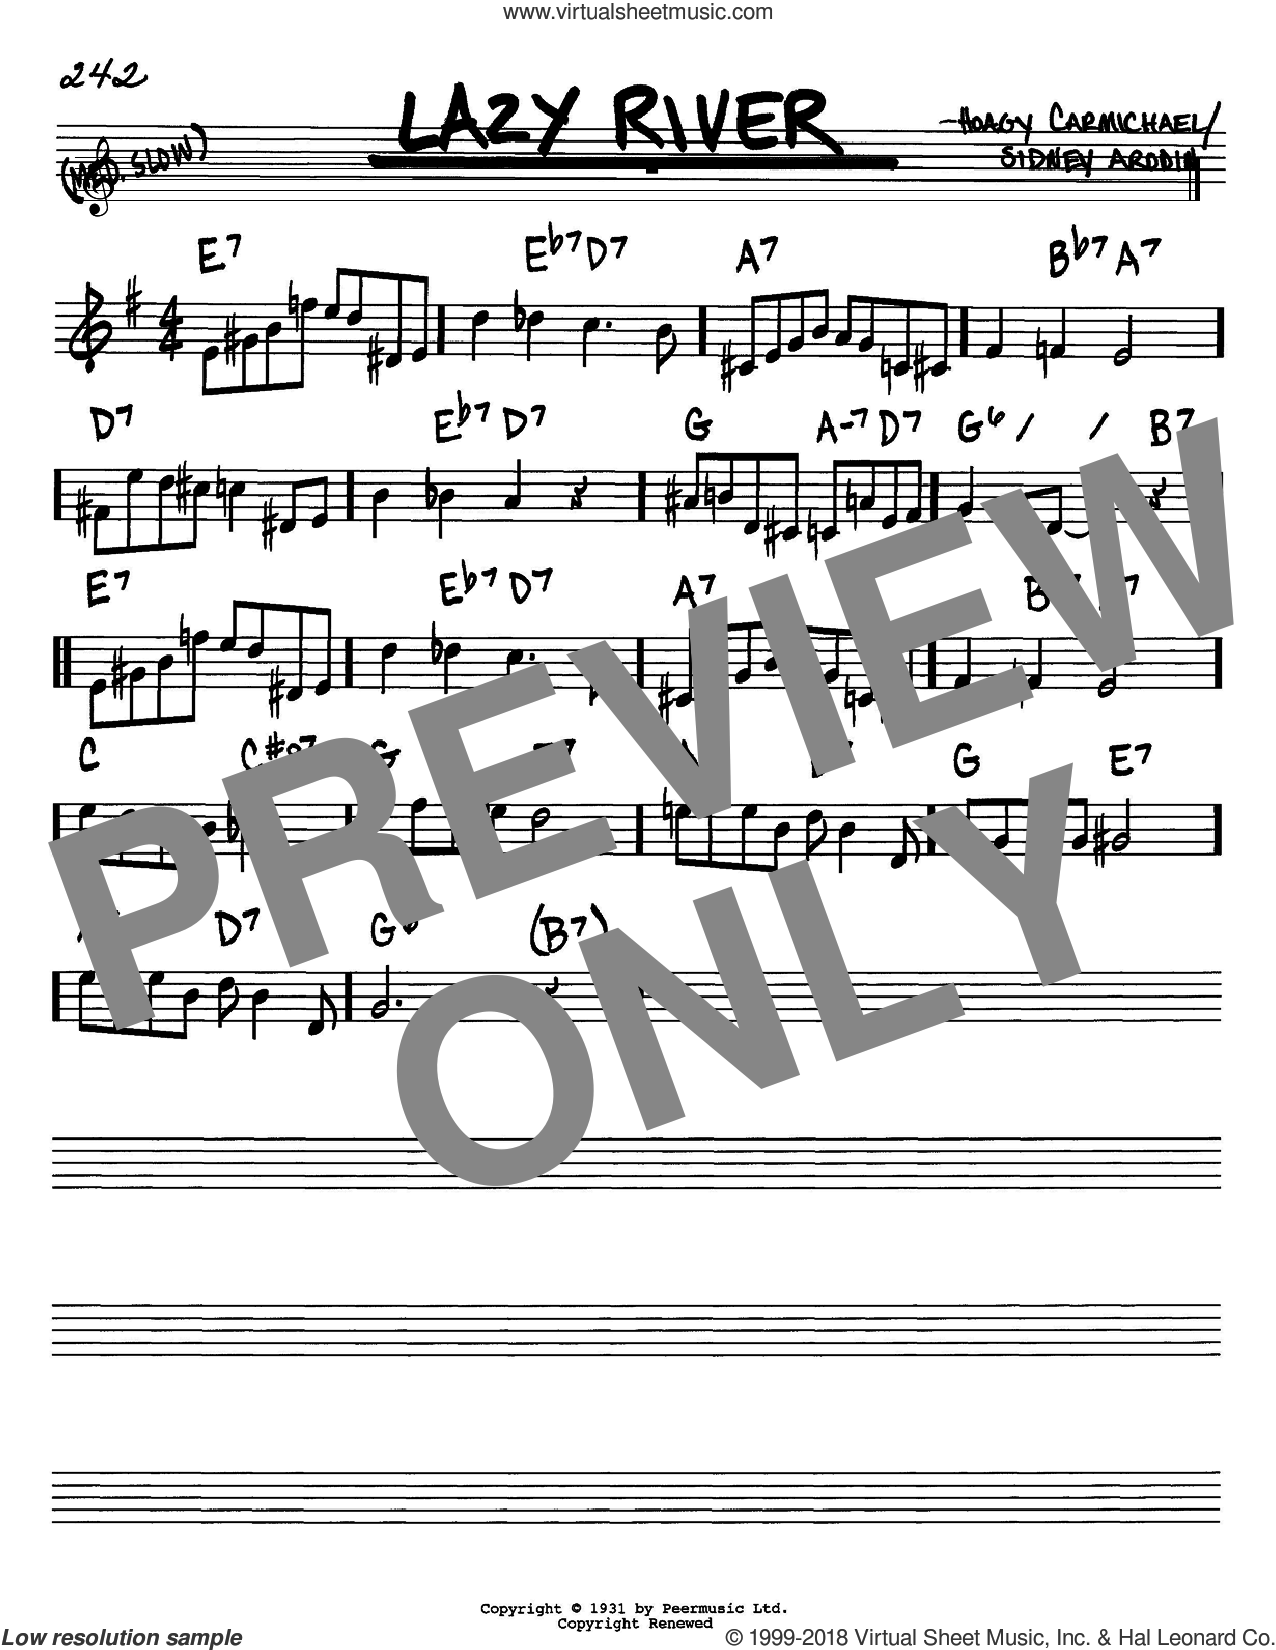 Lazy River sheet music for voice and other instruments (Bb) by Sidney Arodin